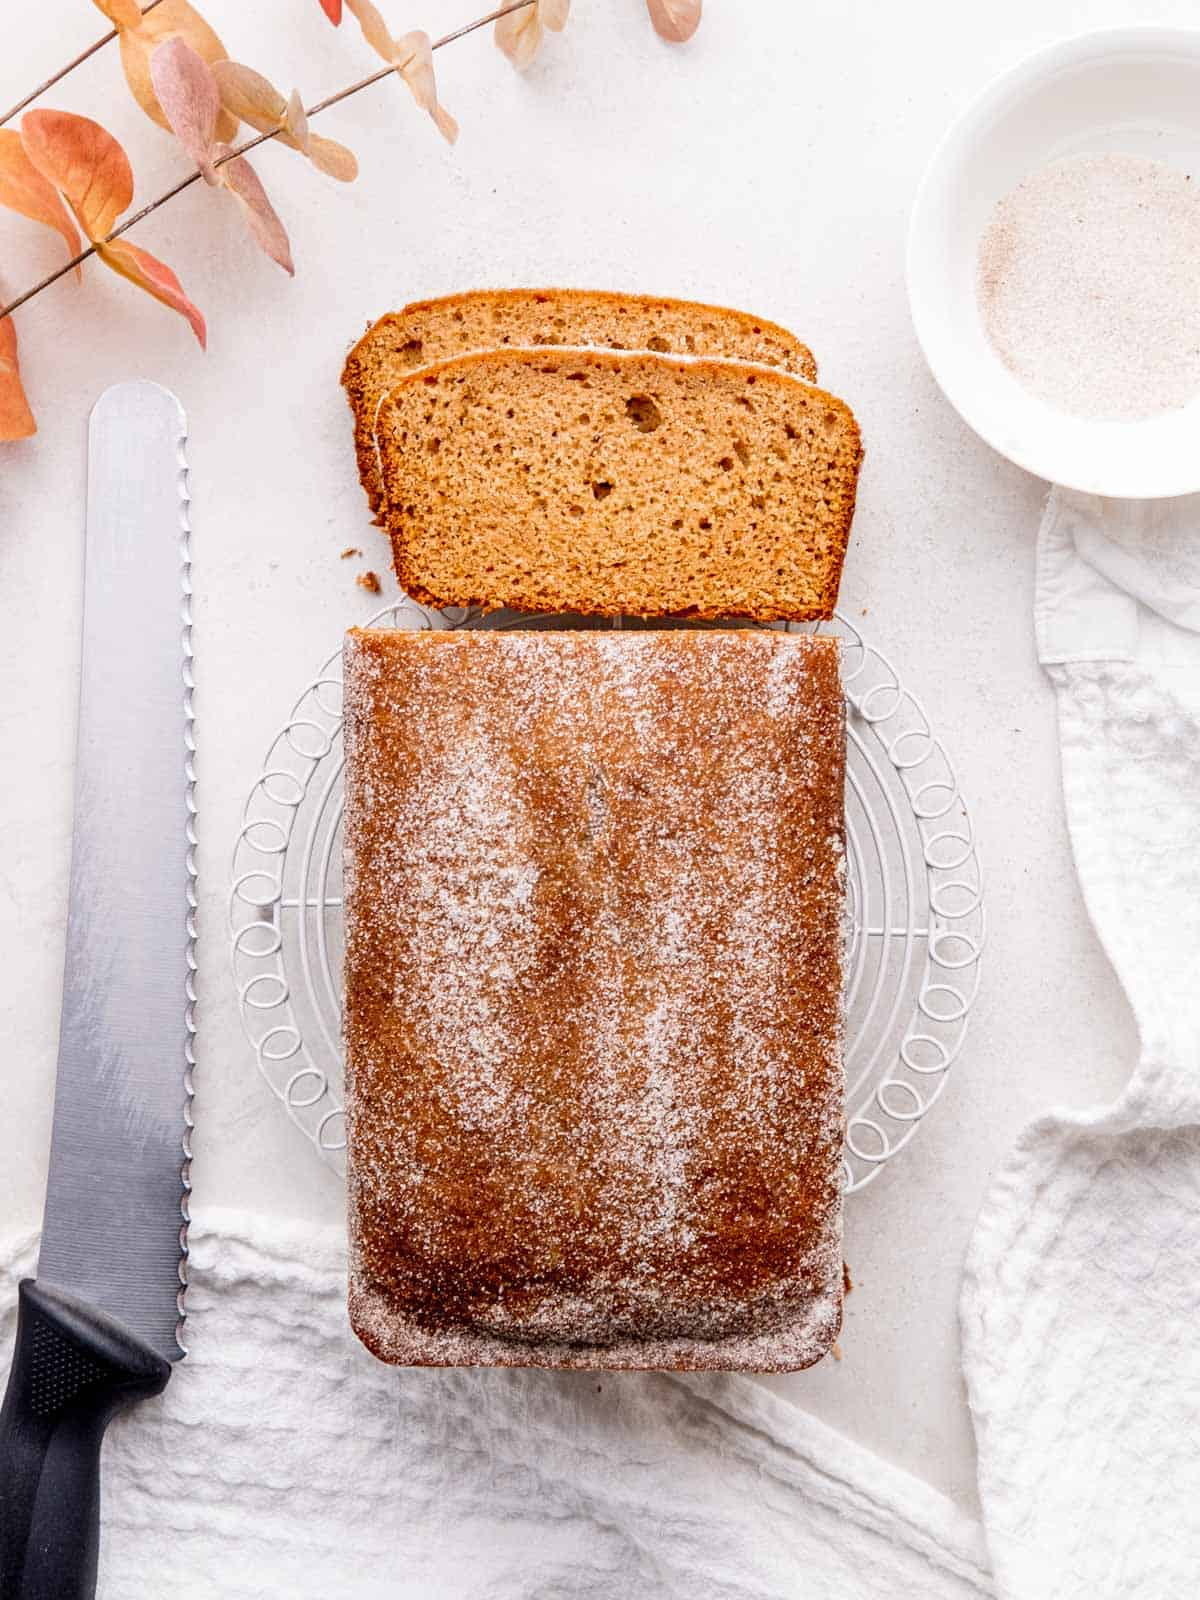 Top view of the apple cider loaf cake topped with chai sugar. Two slices are cut and laying next to the loaf.